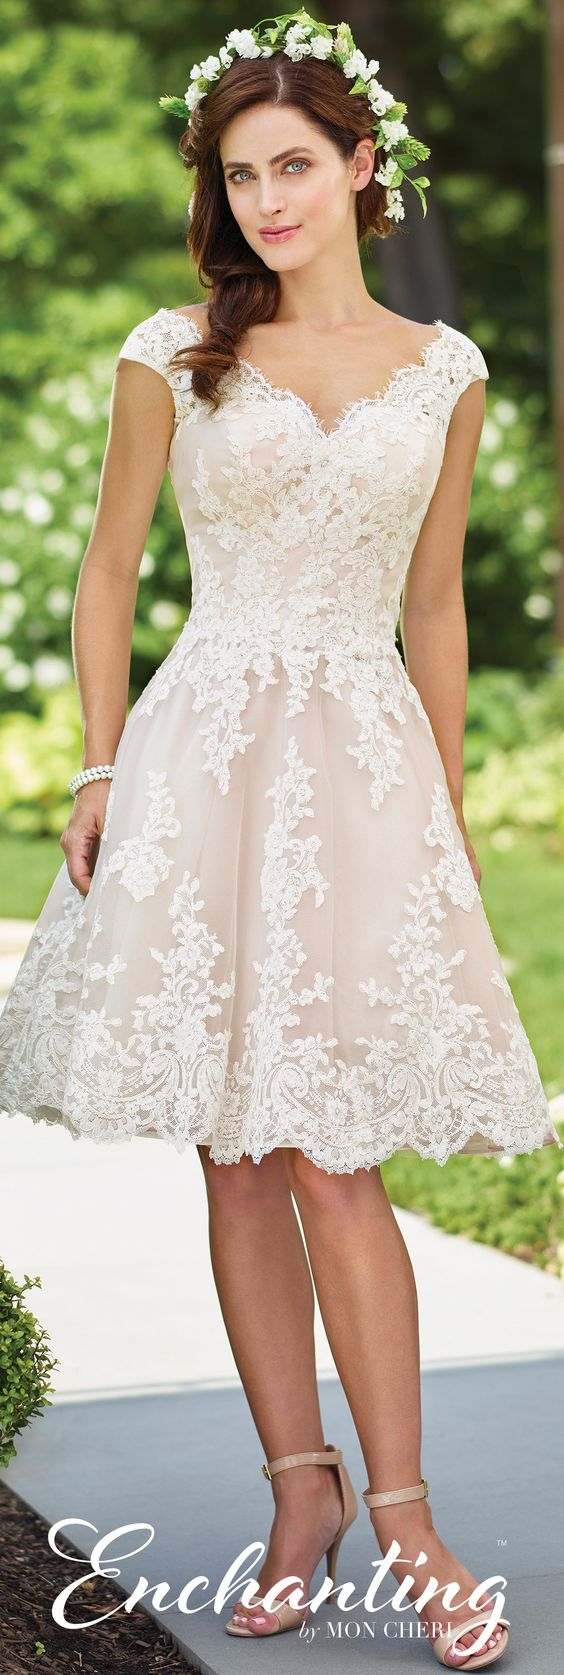 Enchanting by Mon Cheri Spring 2017 Wedding Gown Collection - Style No. 117185 - lace short wedding dress with cap sleeves and deep V-back in Ivory-Tea Rose: